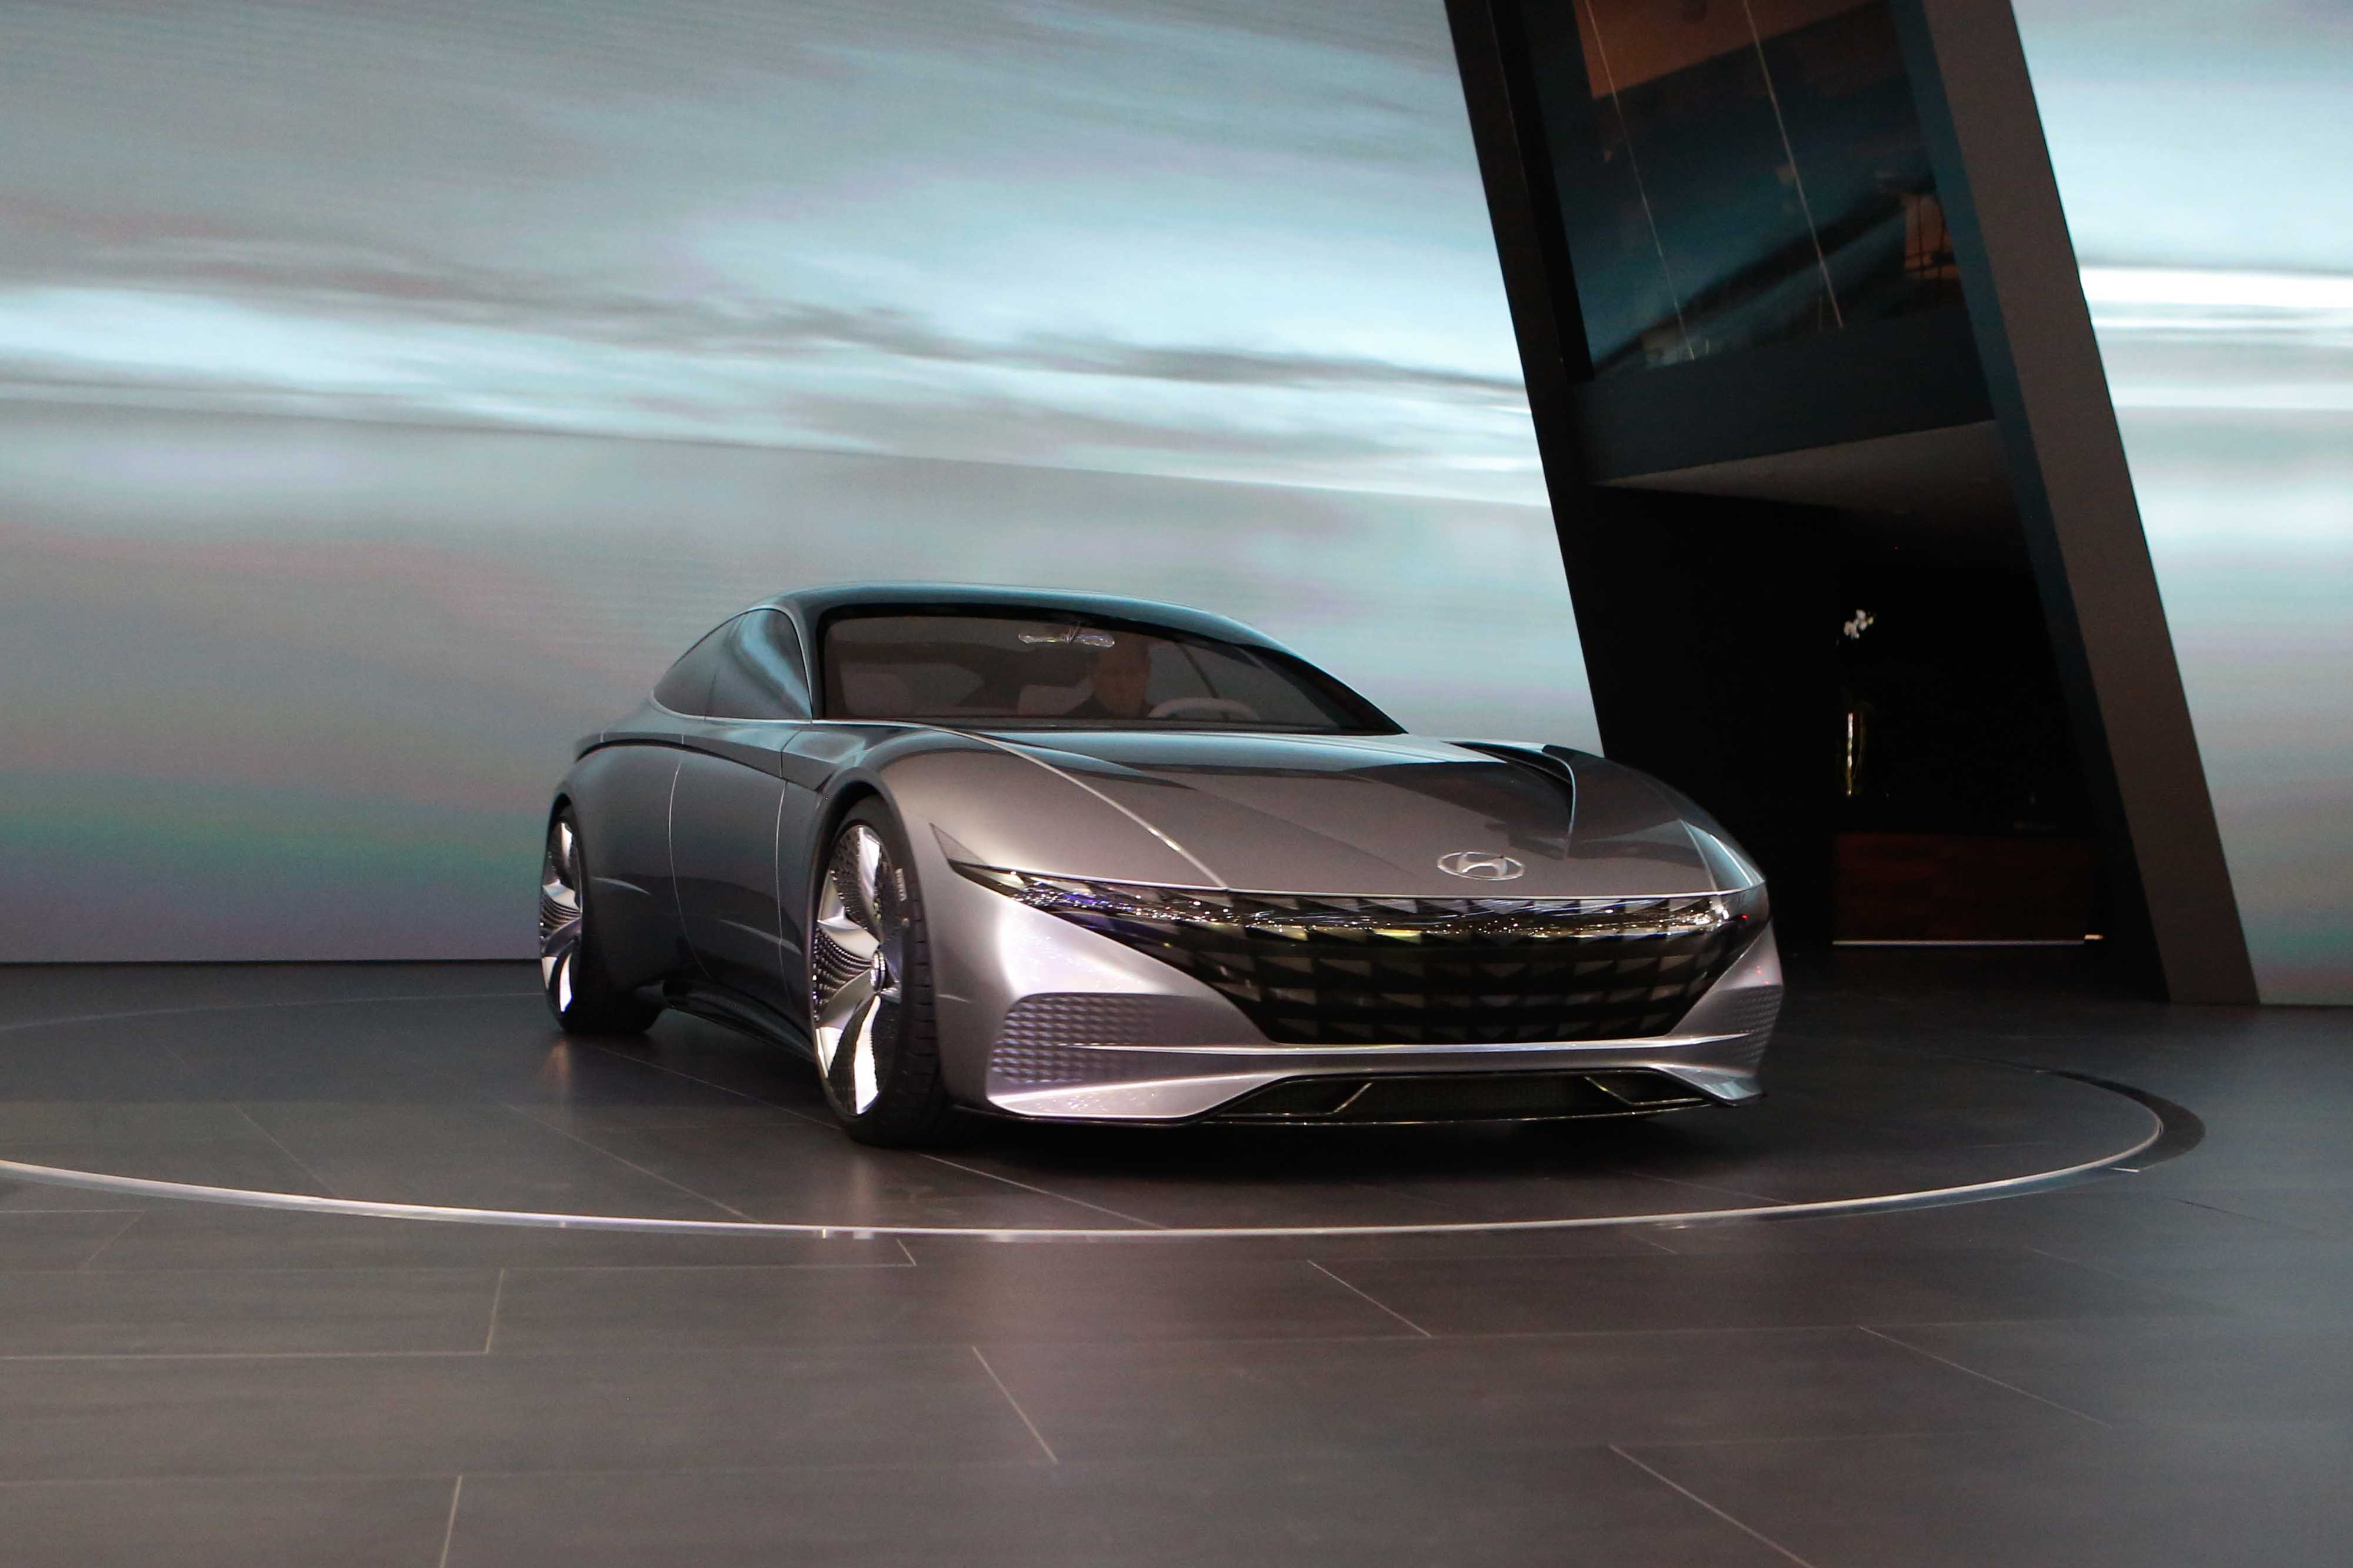 Hyundai Reveals New Design Direction with Launch of Concept Car at Geneva Motor Show